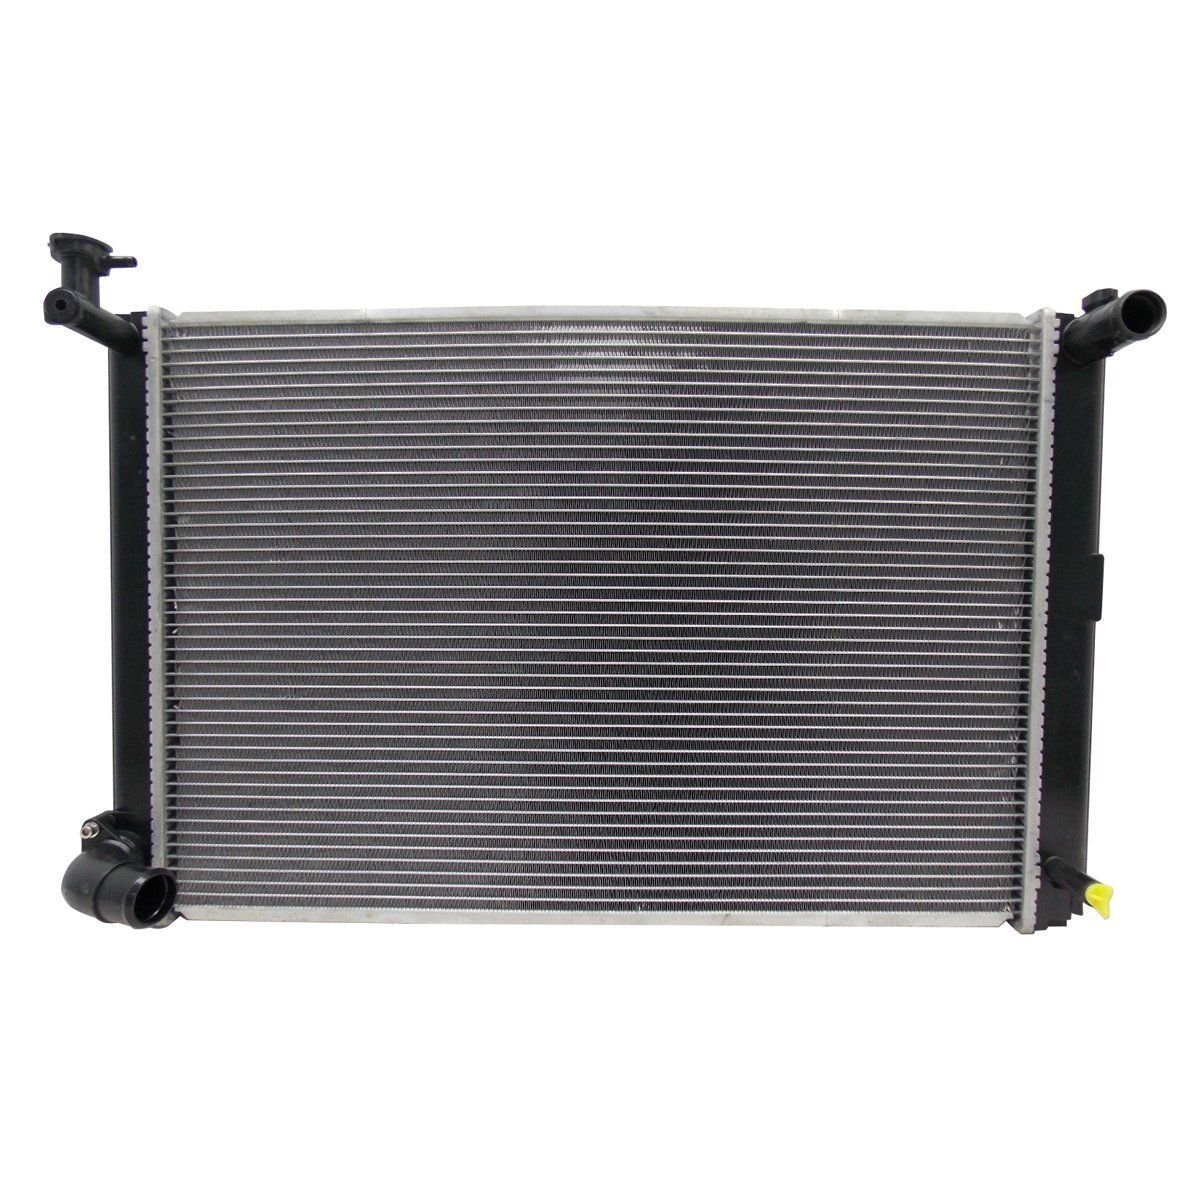 ECCPP Radiator 13037 for 1988-1997 Chevrolet C1500/C2500/C3500/K1500/K2500/K3500/P30 5.0L 5.7L